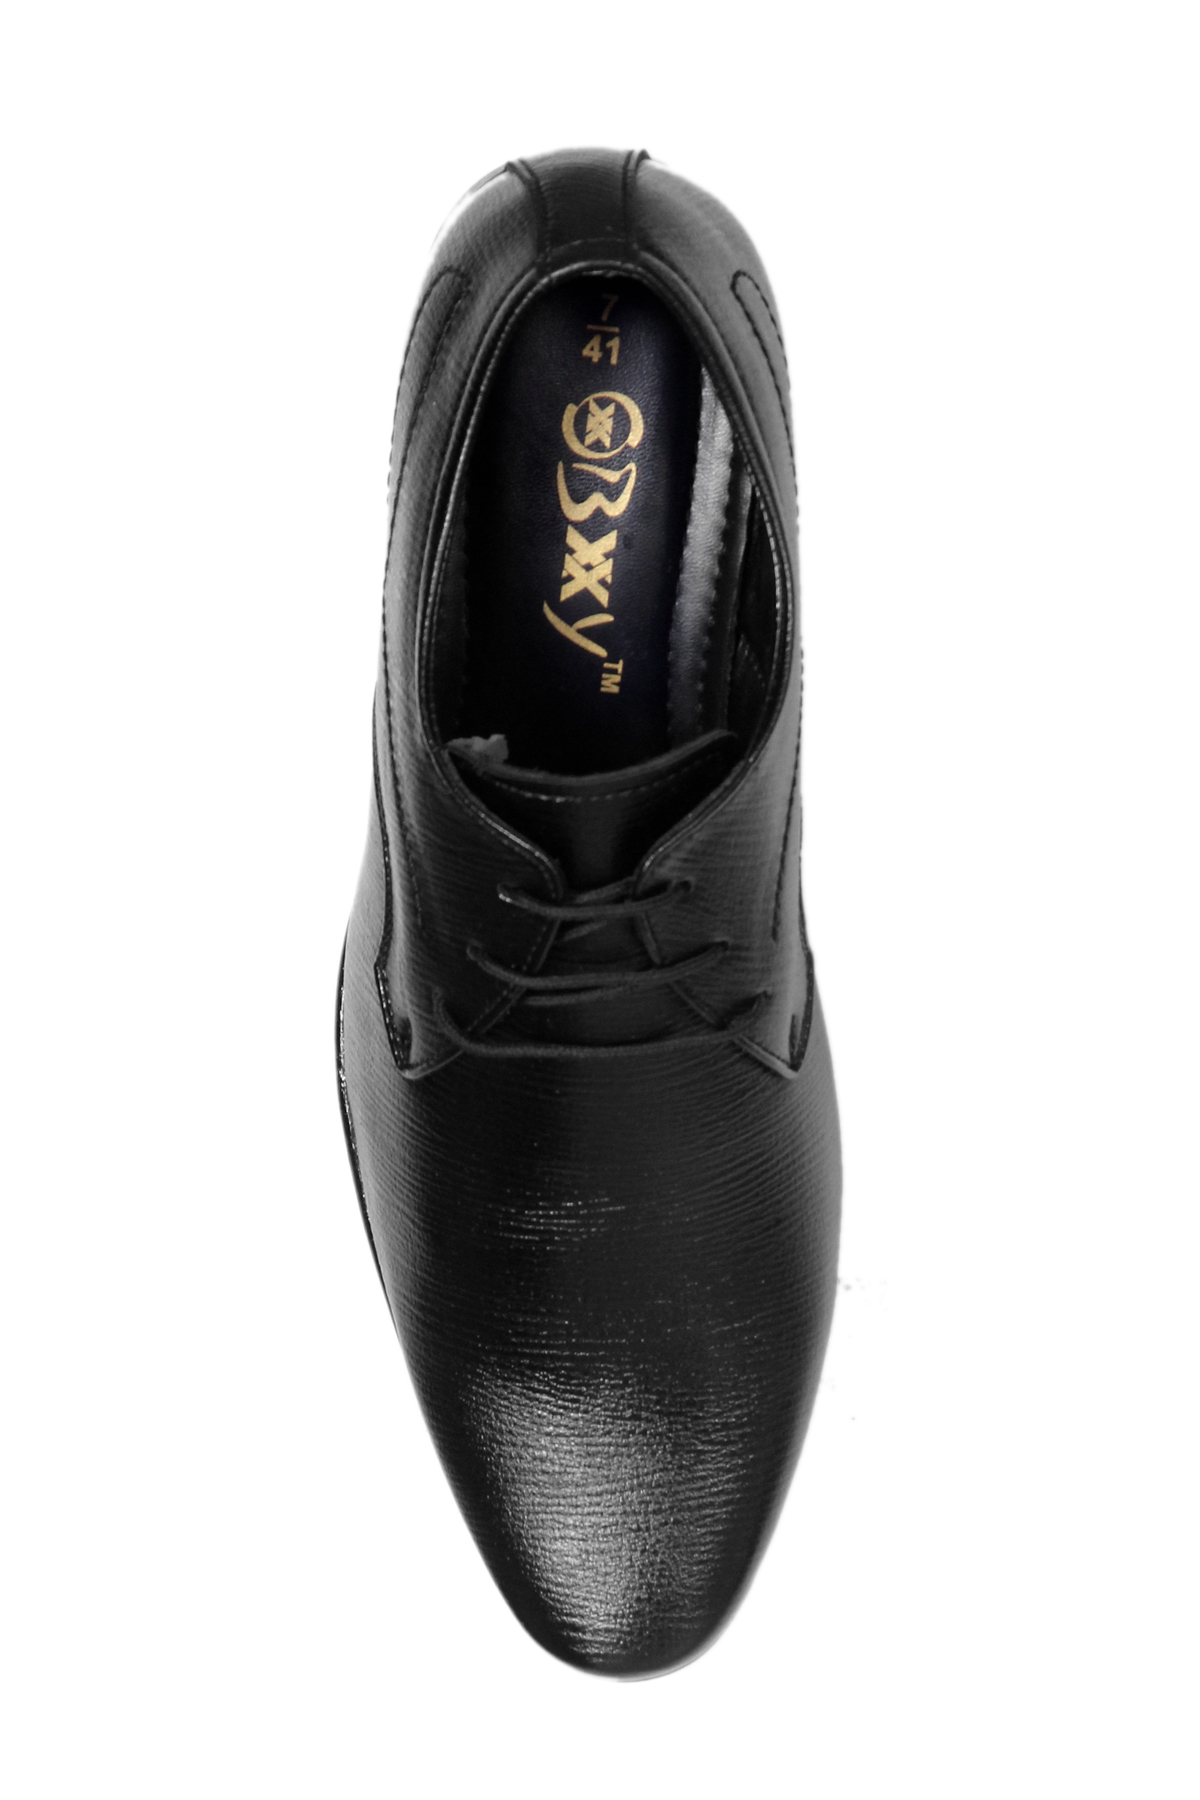 LACE UP FORMAL SHOES